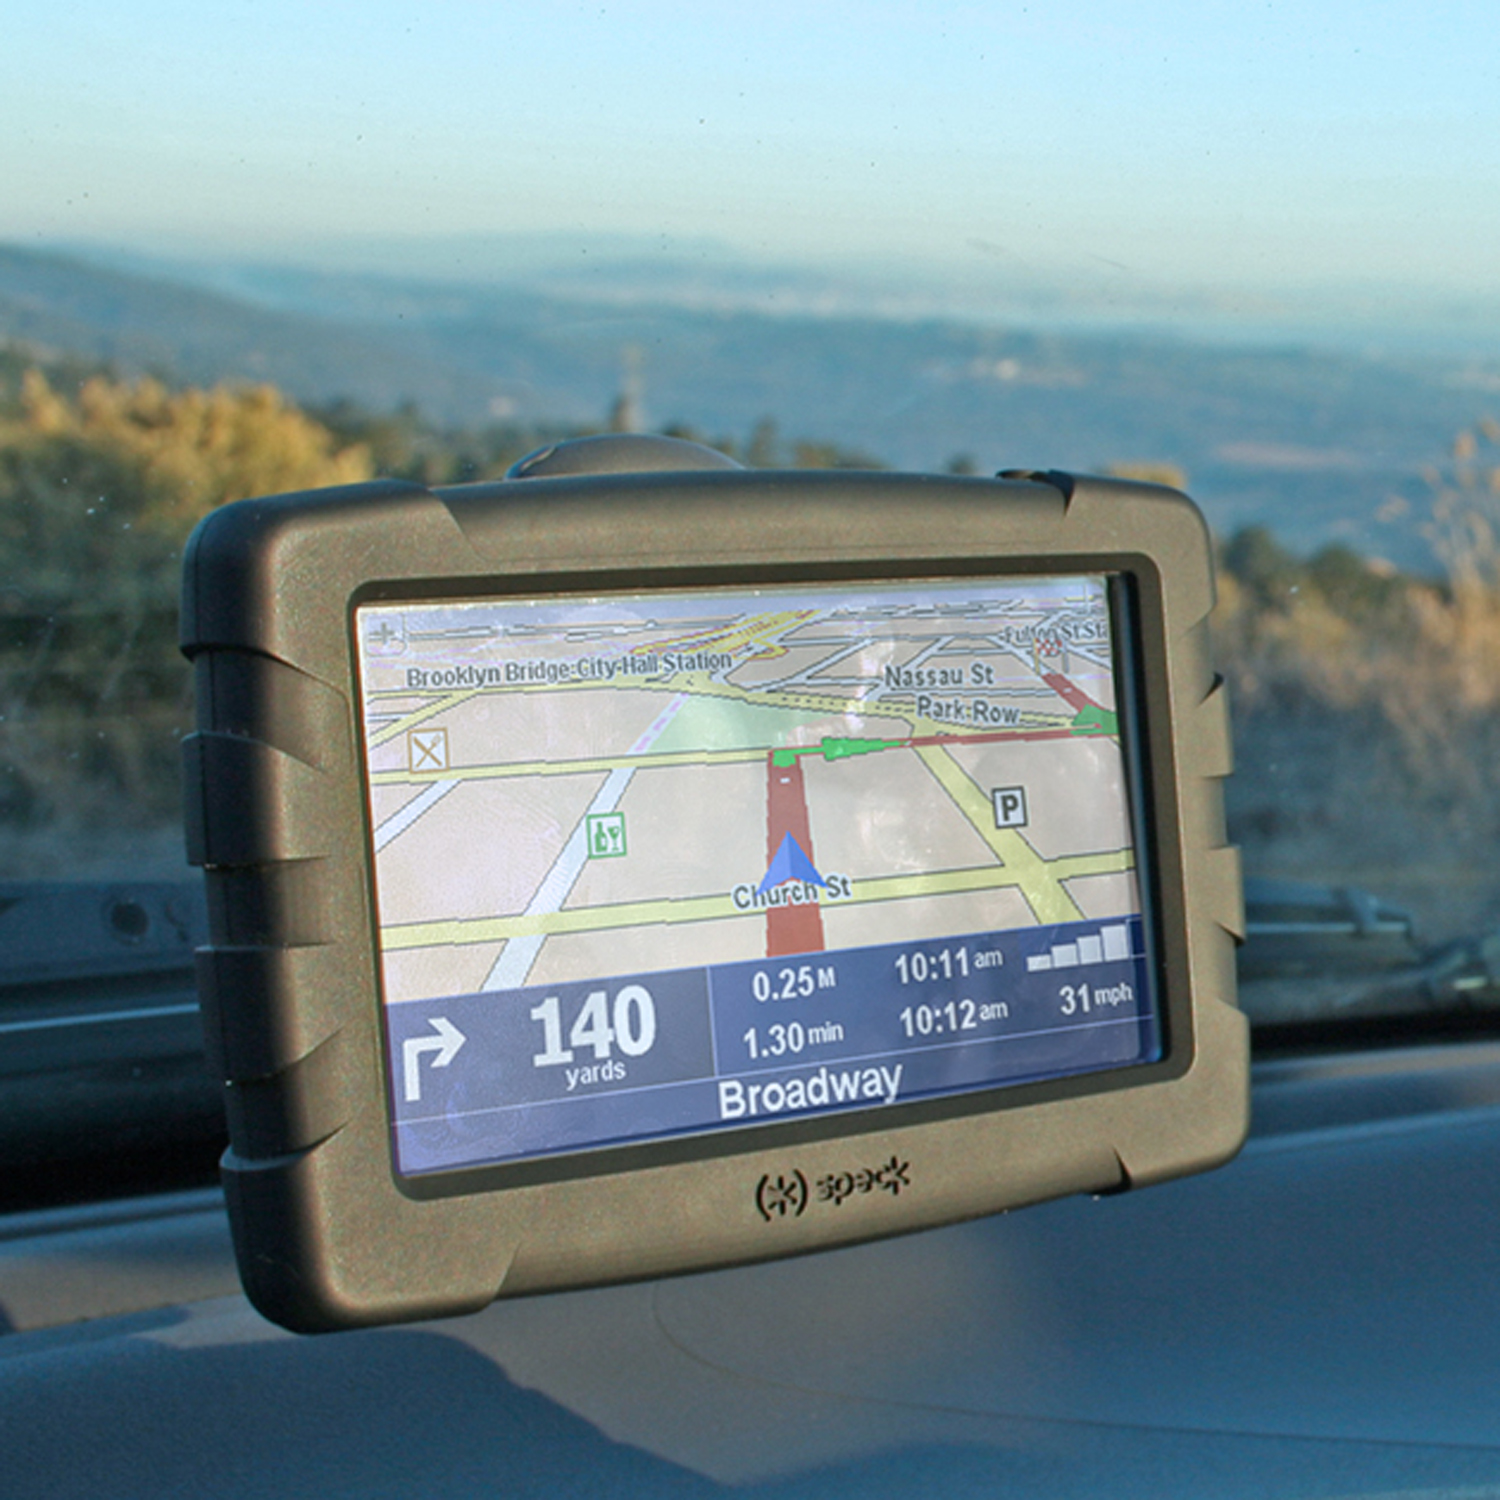 TomTom Offers Roadside Assistance To Users Of IPhone App